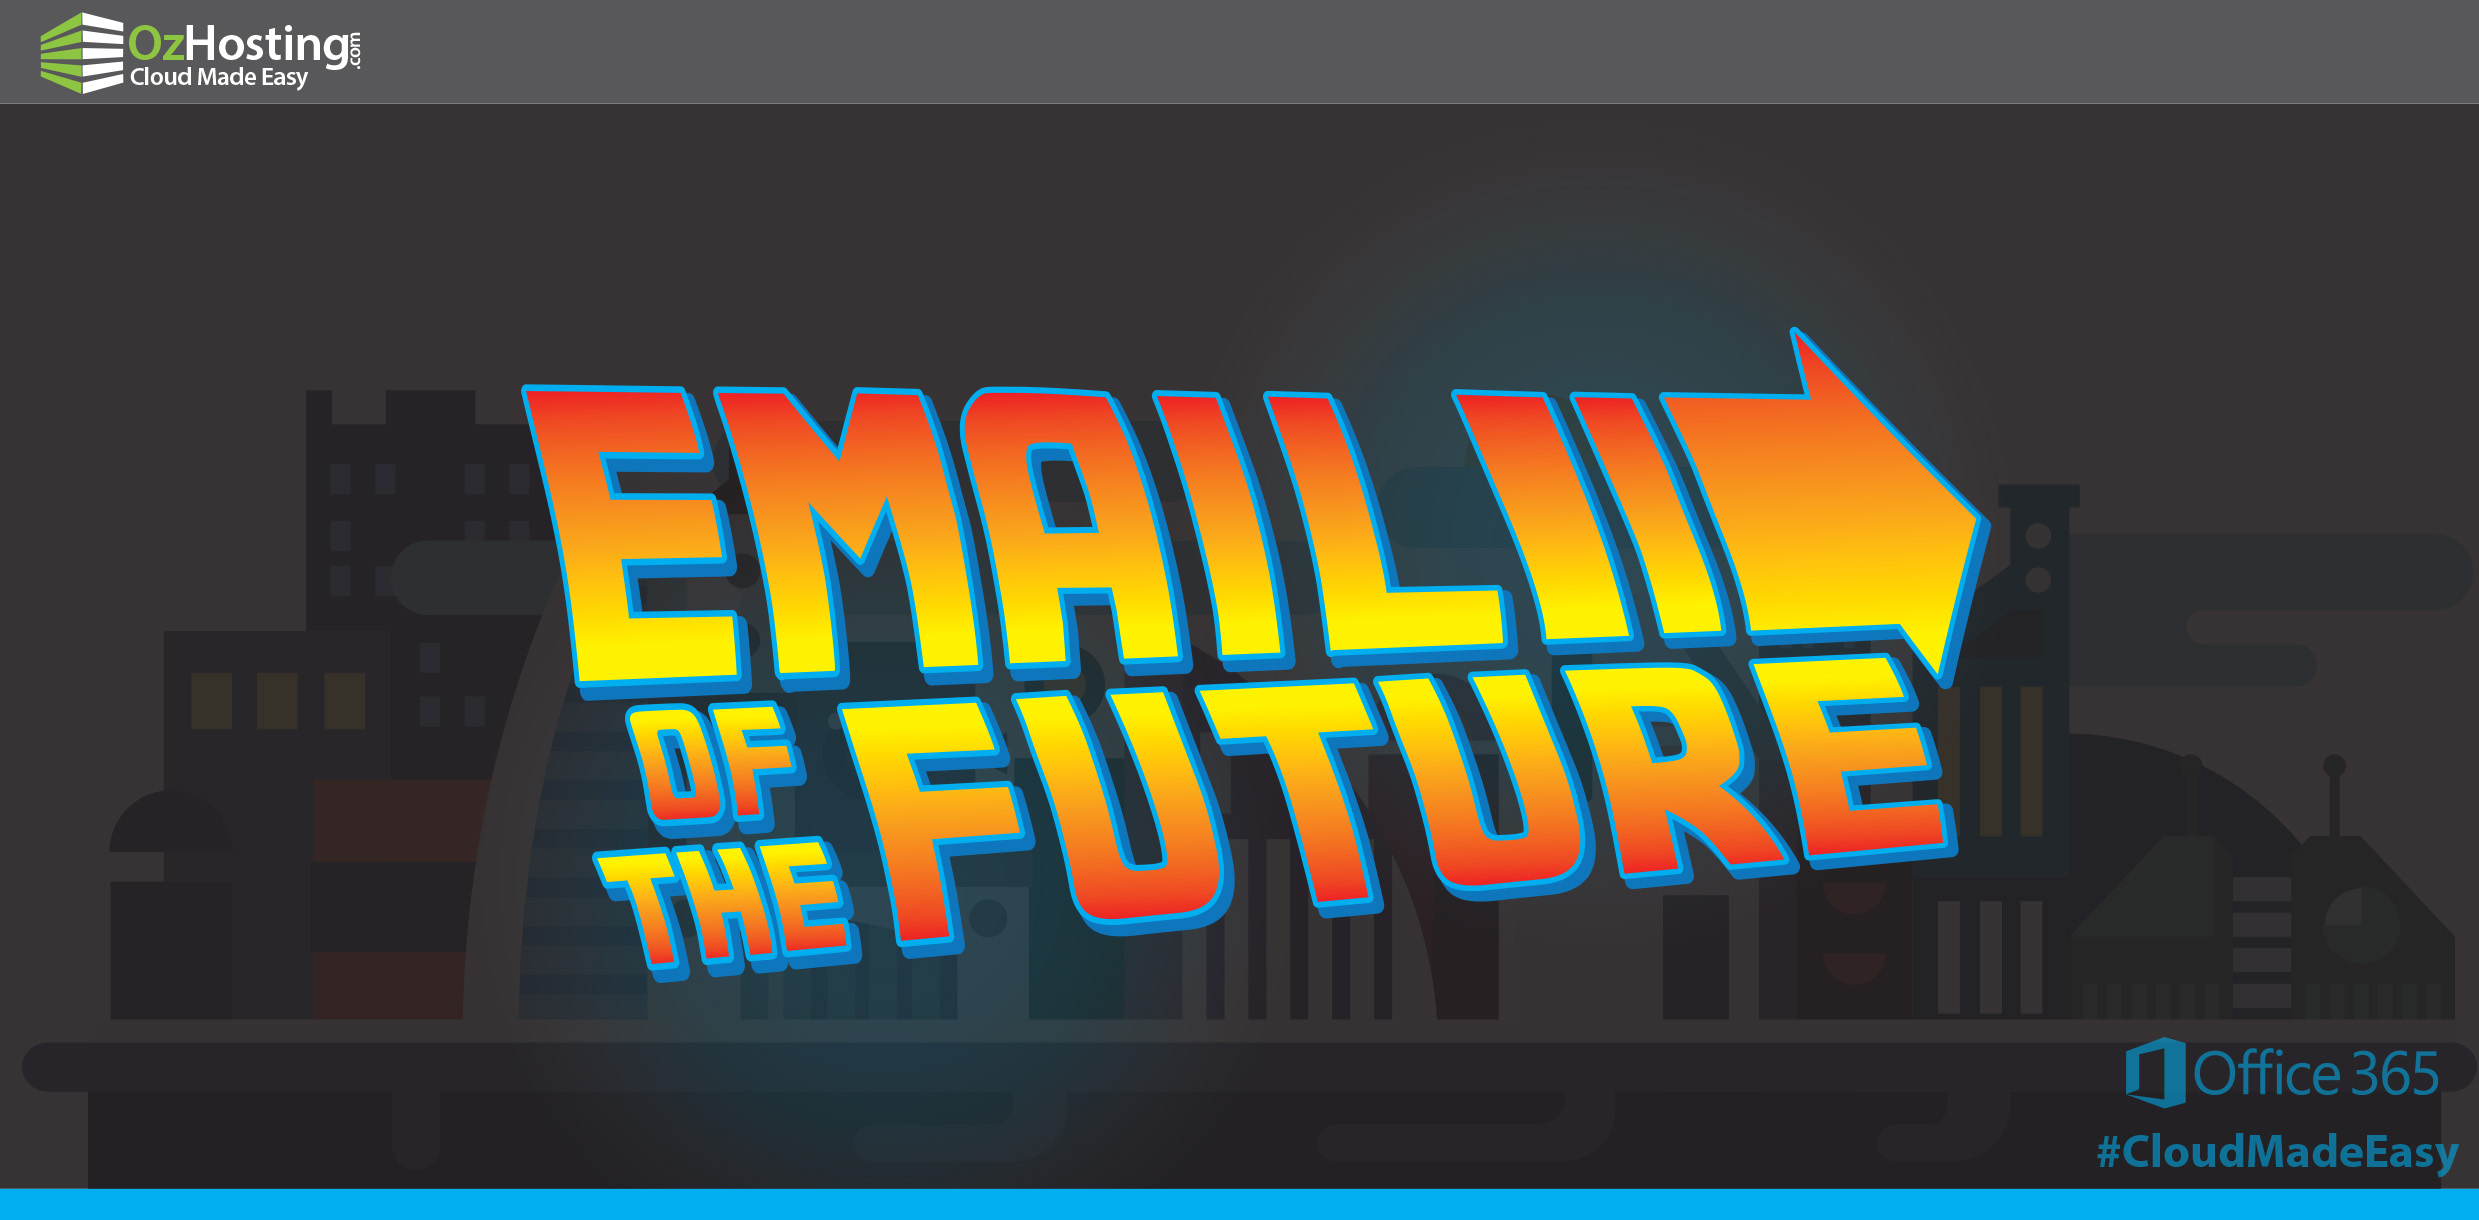 Email of The Future